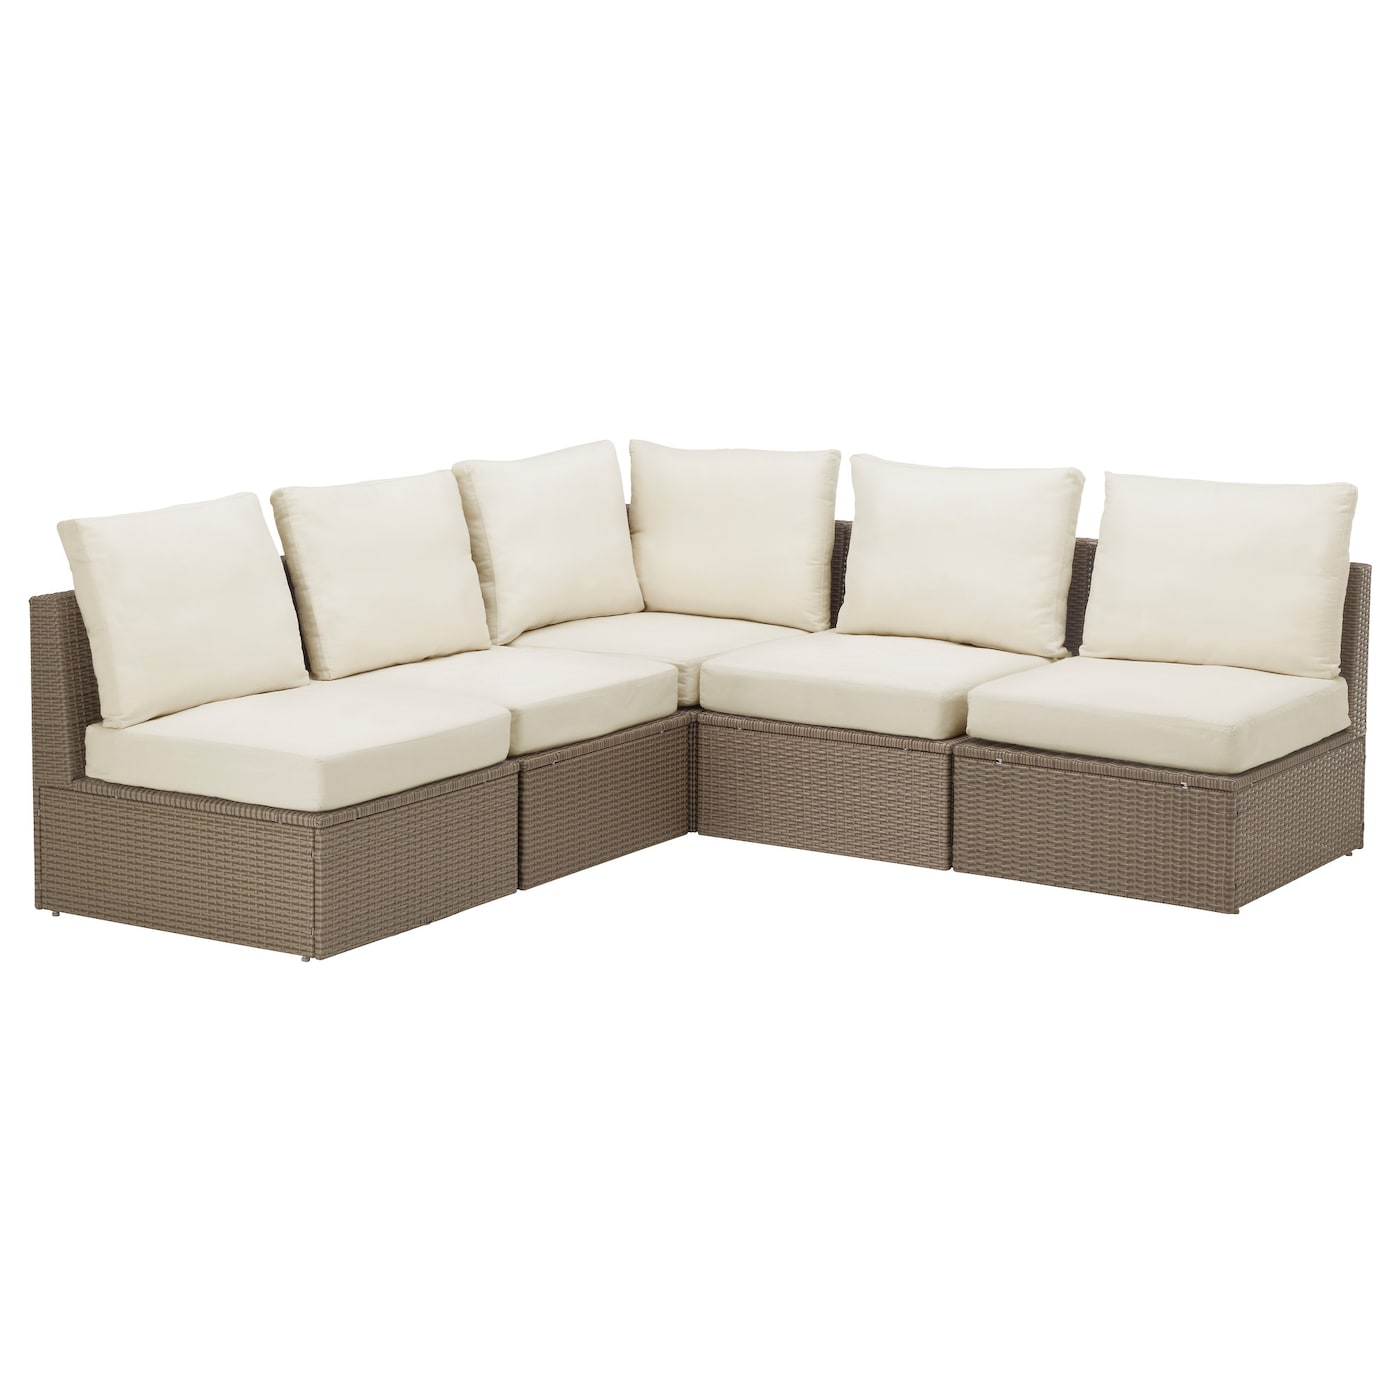 arholma corner sofa 3 2 outdoor brown beige 206 206x76x66 cm ikea. Black Bedroom Furniture Sets. Home Design Ideas